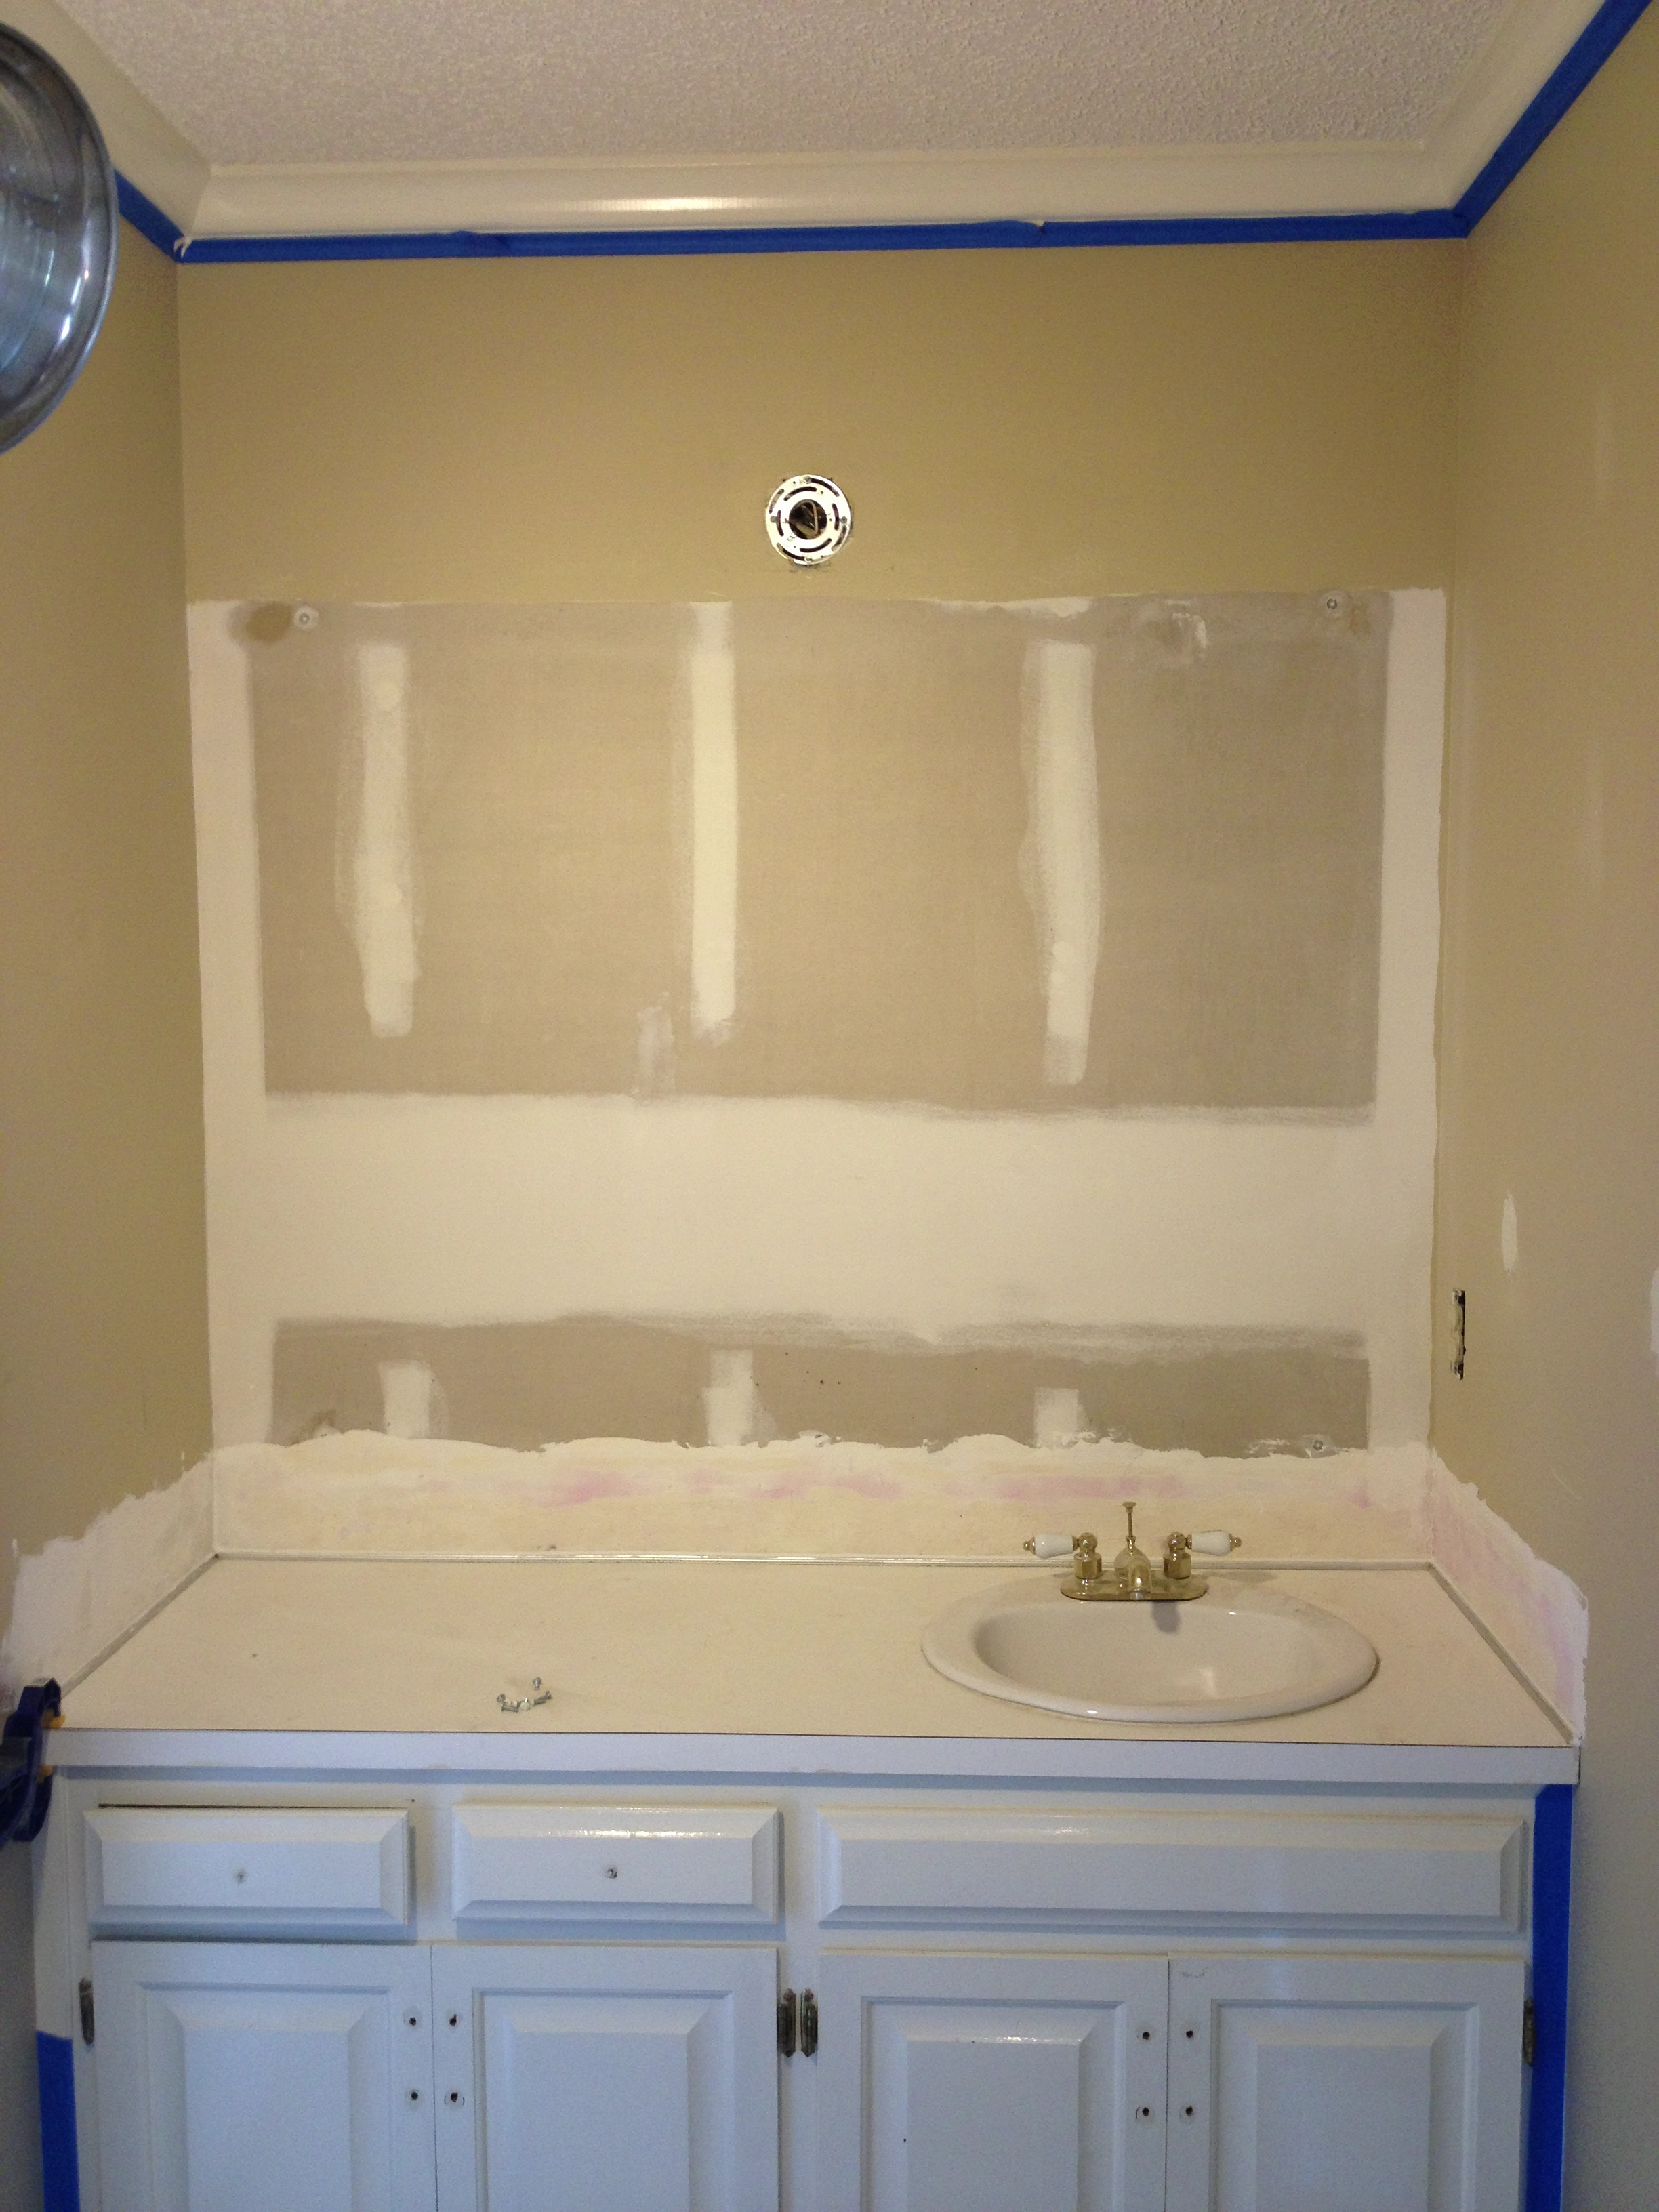 Makeover monday one day bathroom reno part 2 and the for How to reno a bathroom